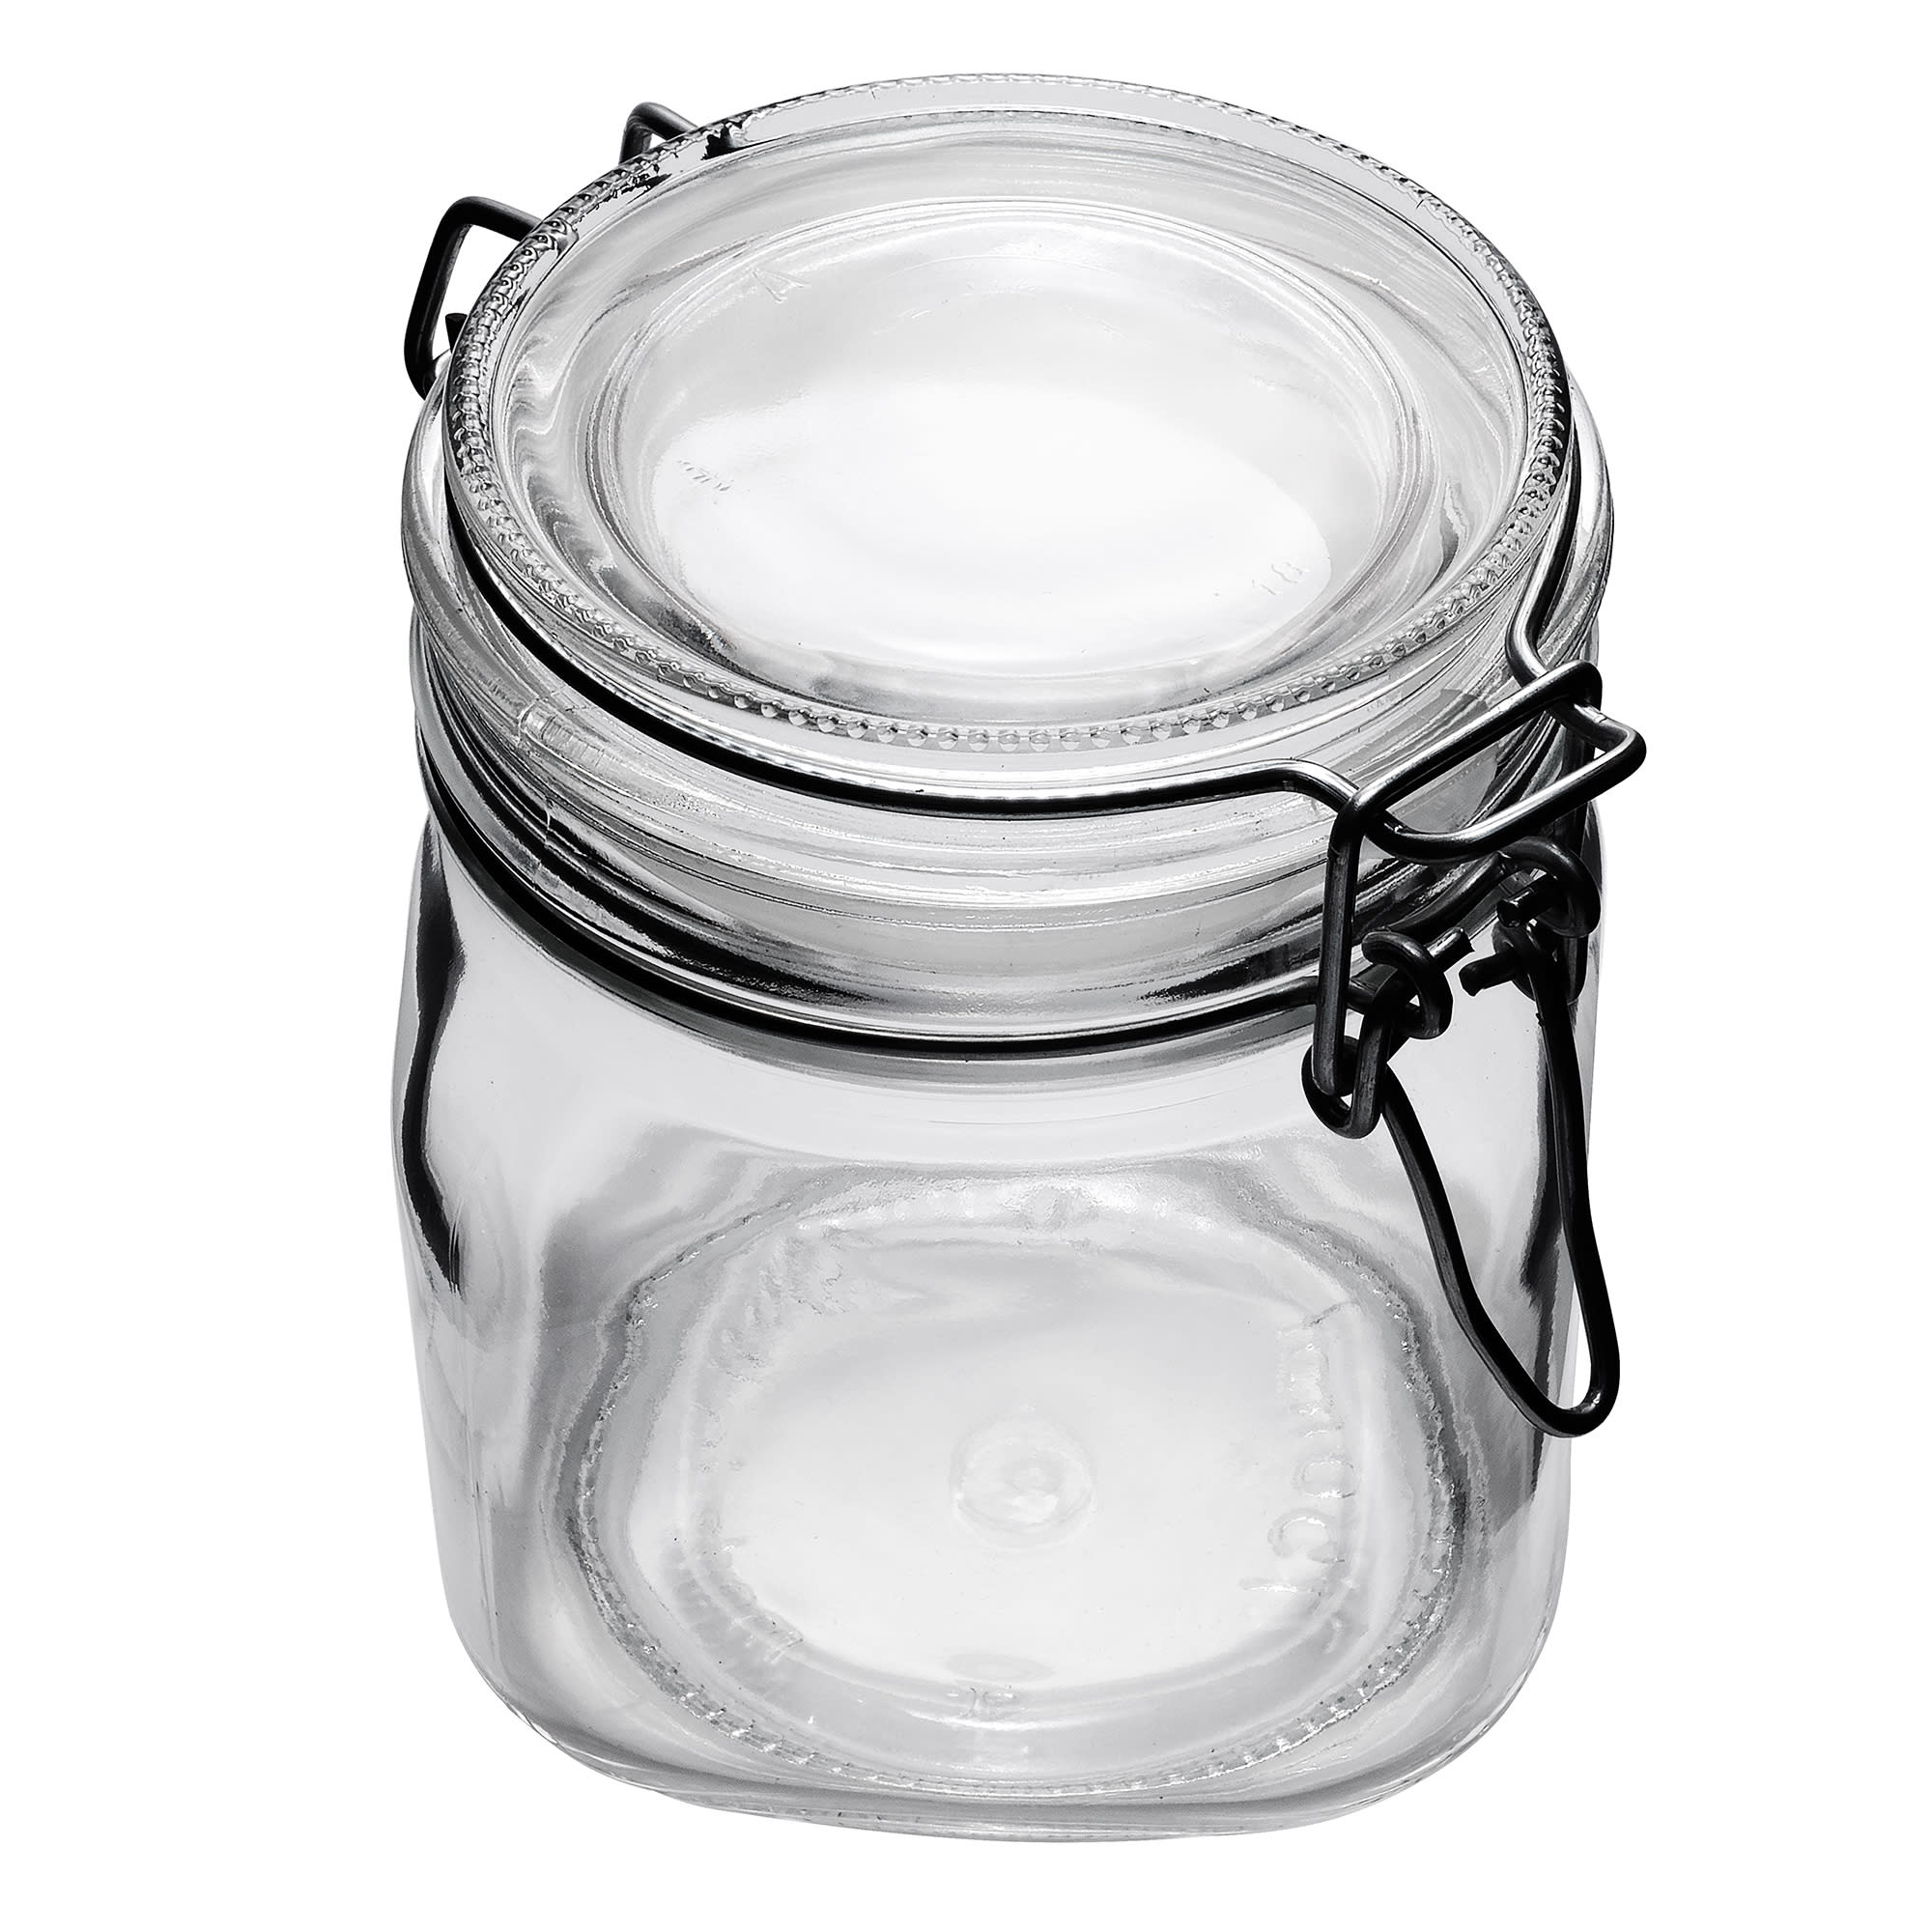 Libbey 17209925 25.25-oz Glass Jar - Clamp Lid, Large Ope...